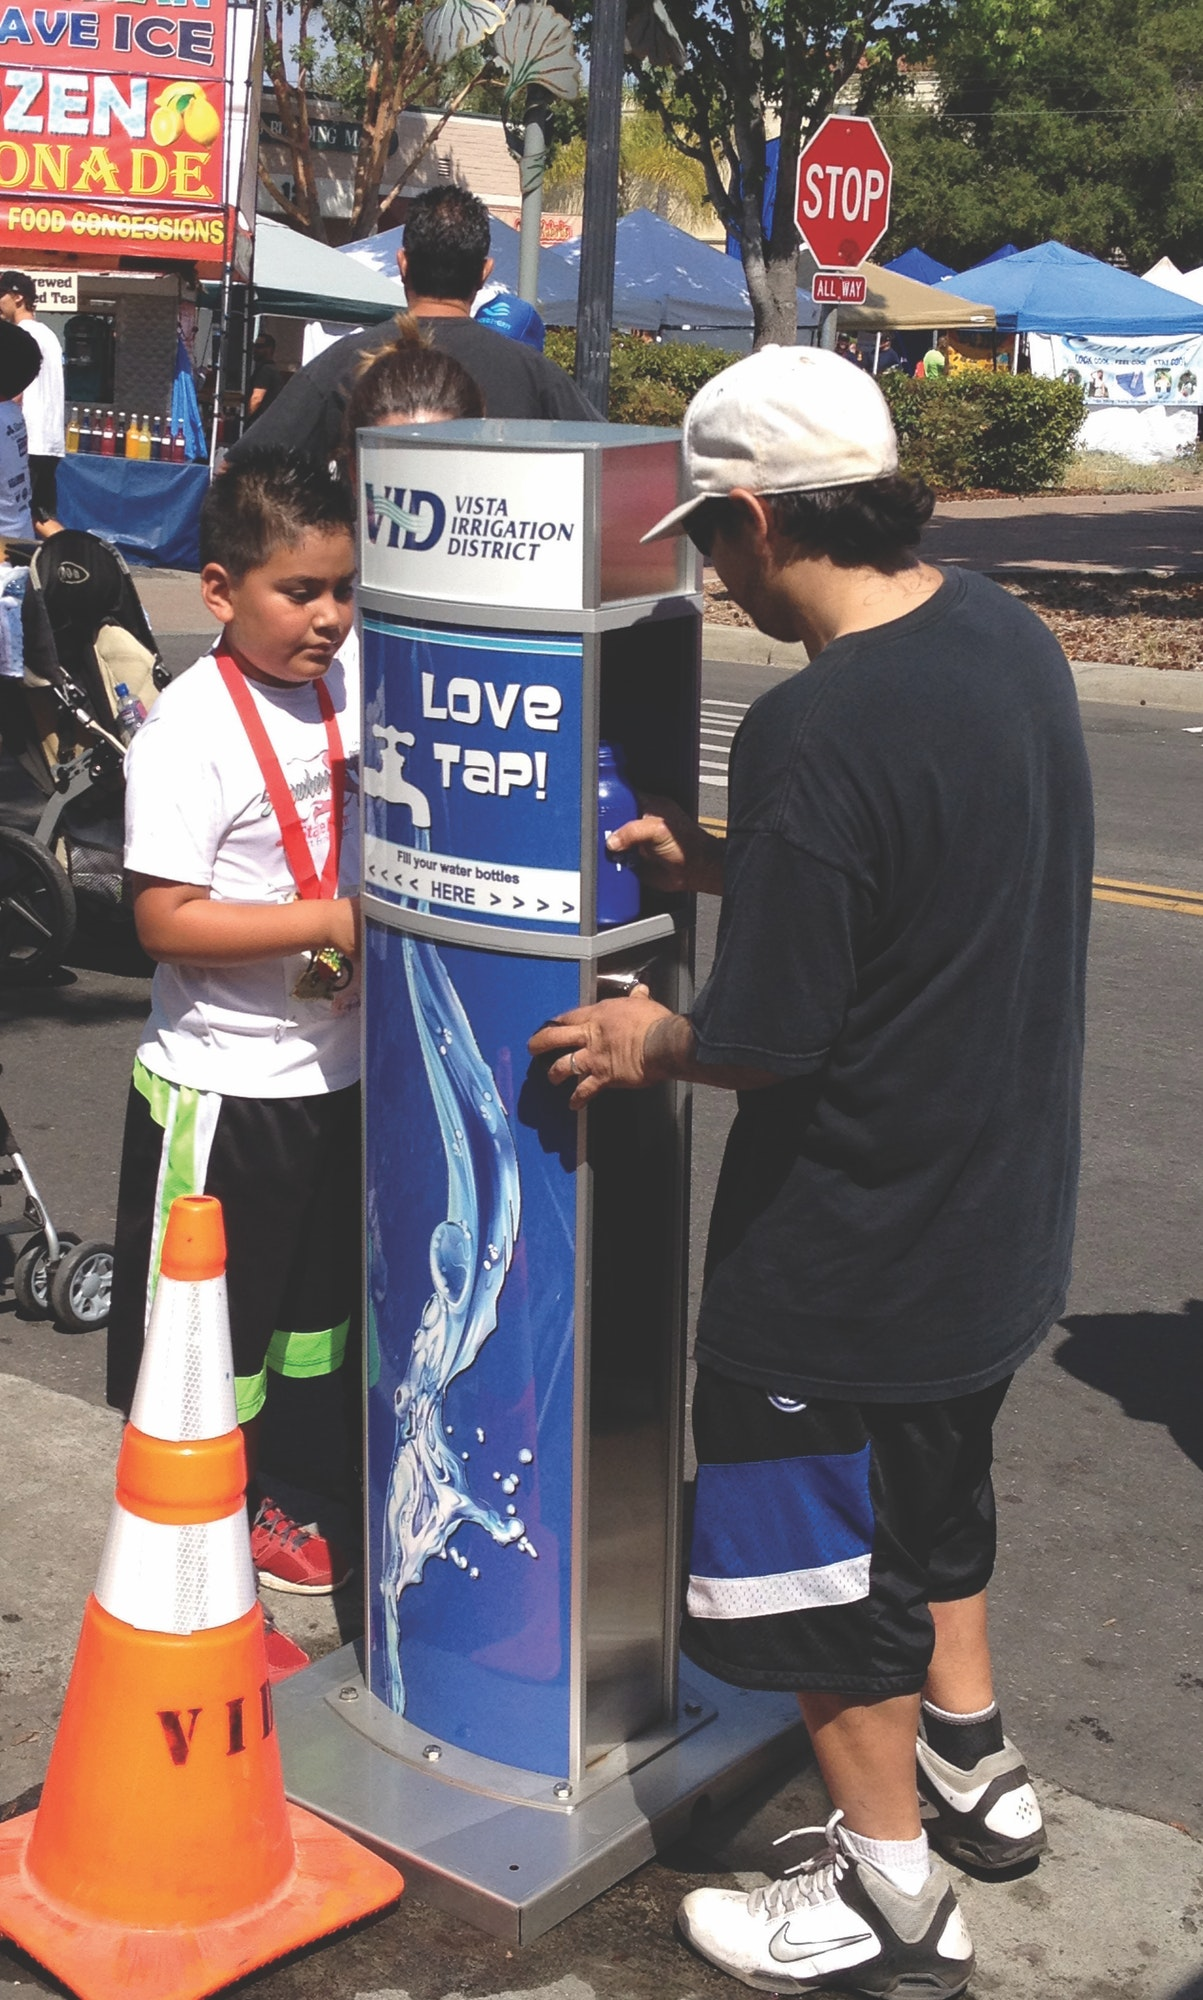 Customers filling reusable water bottles at hydration station.